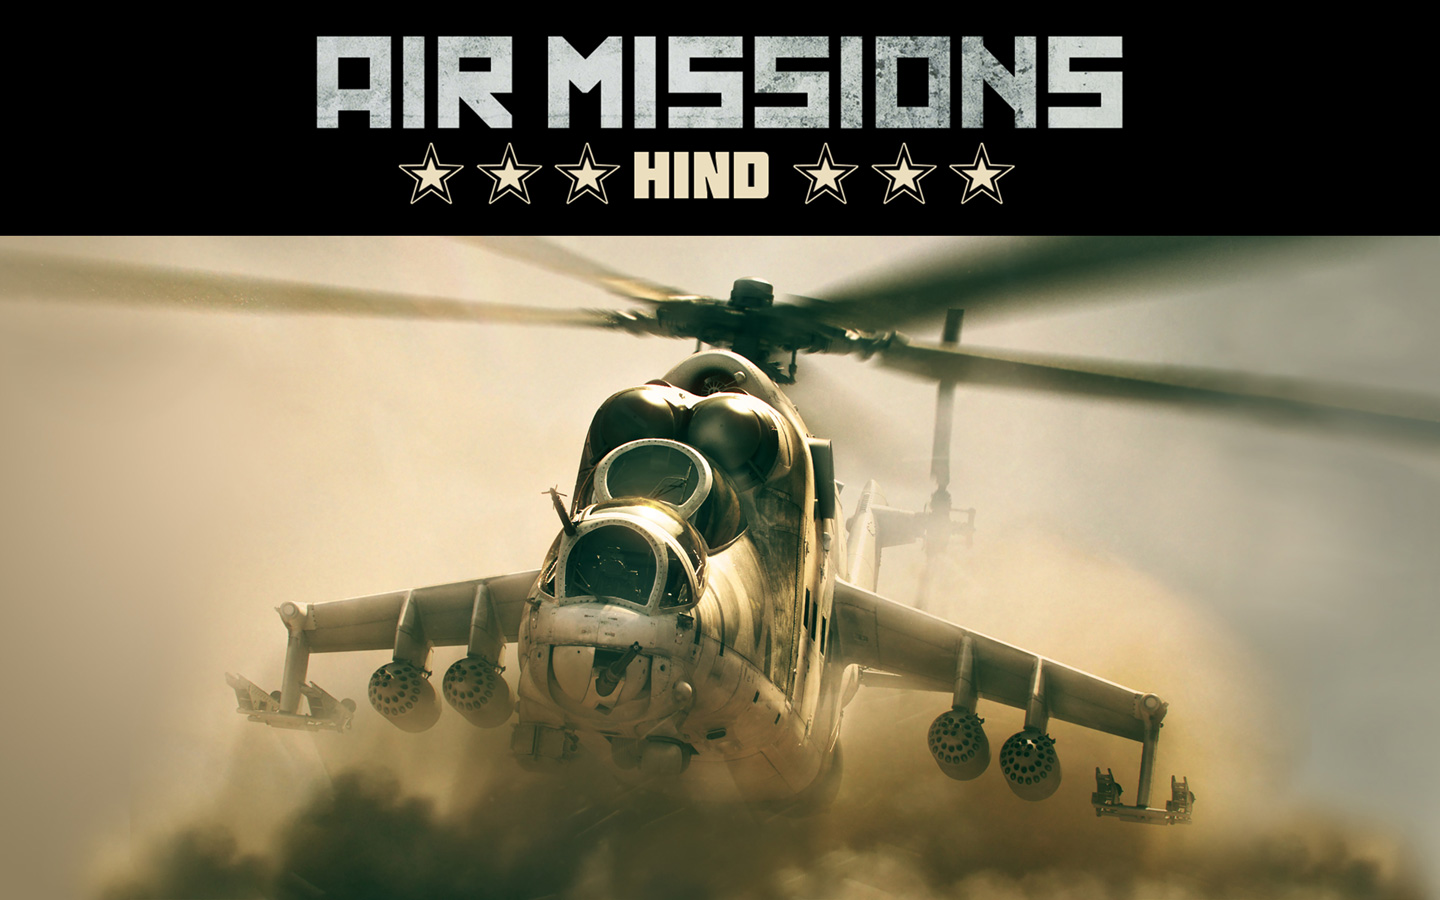 Free Air Missions: HIND Wallpaper in 1440x900